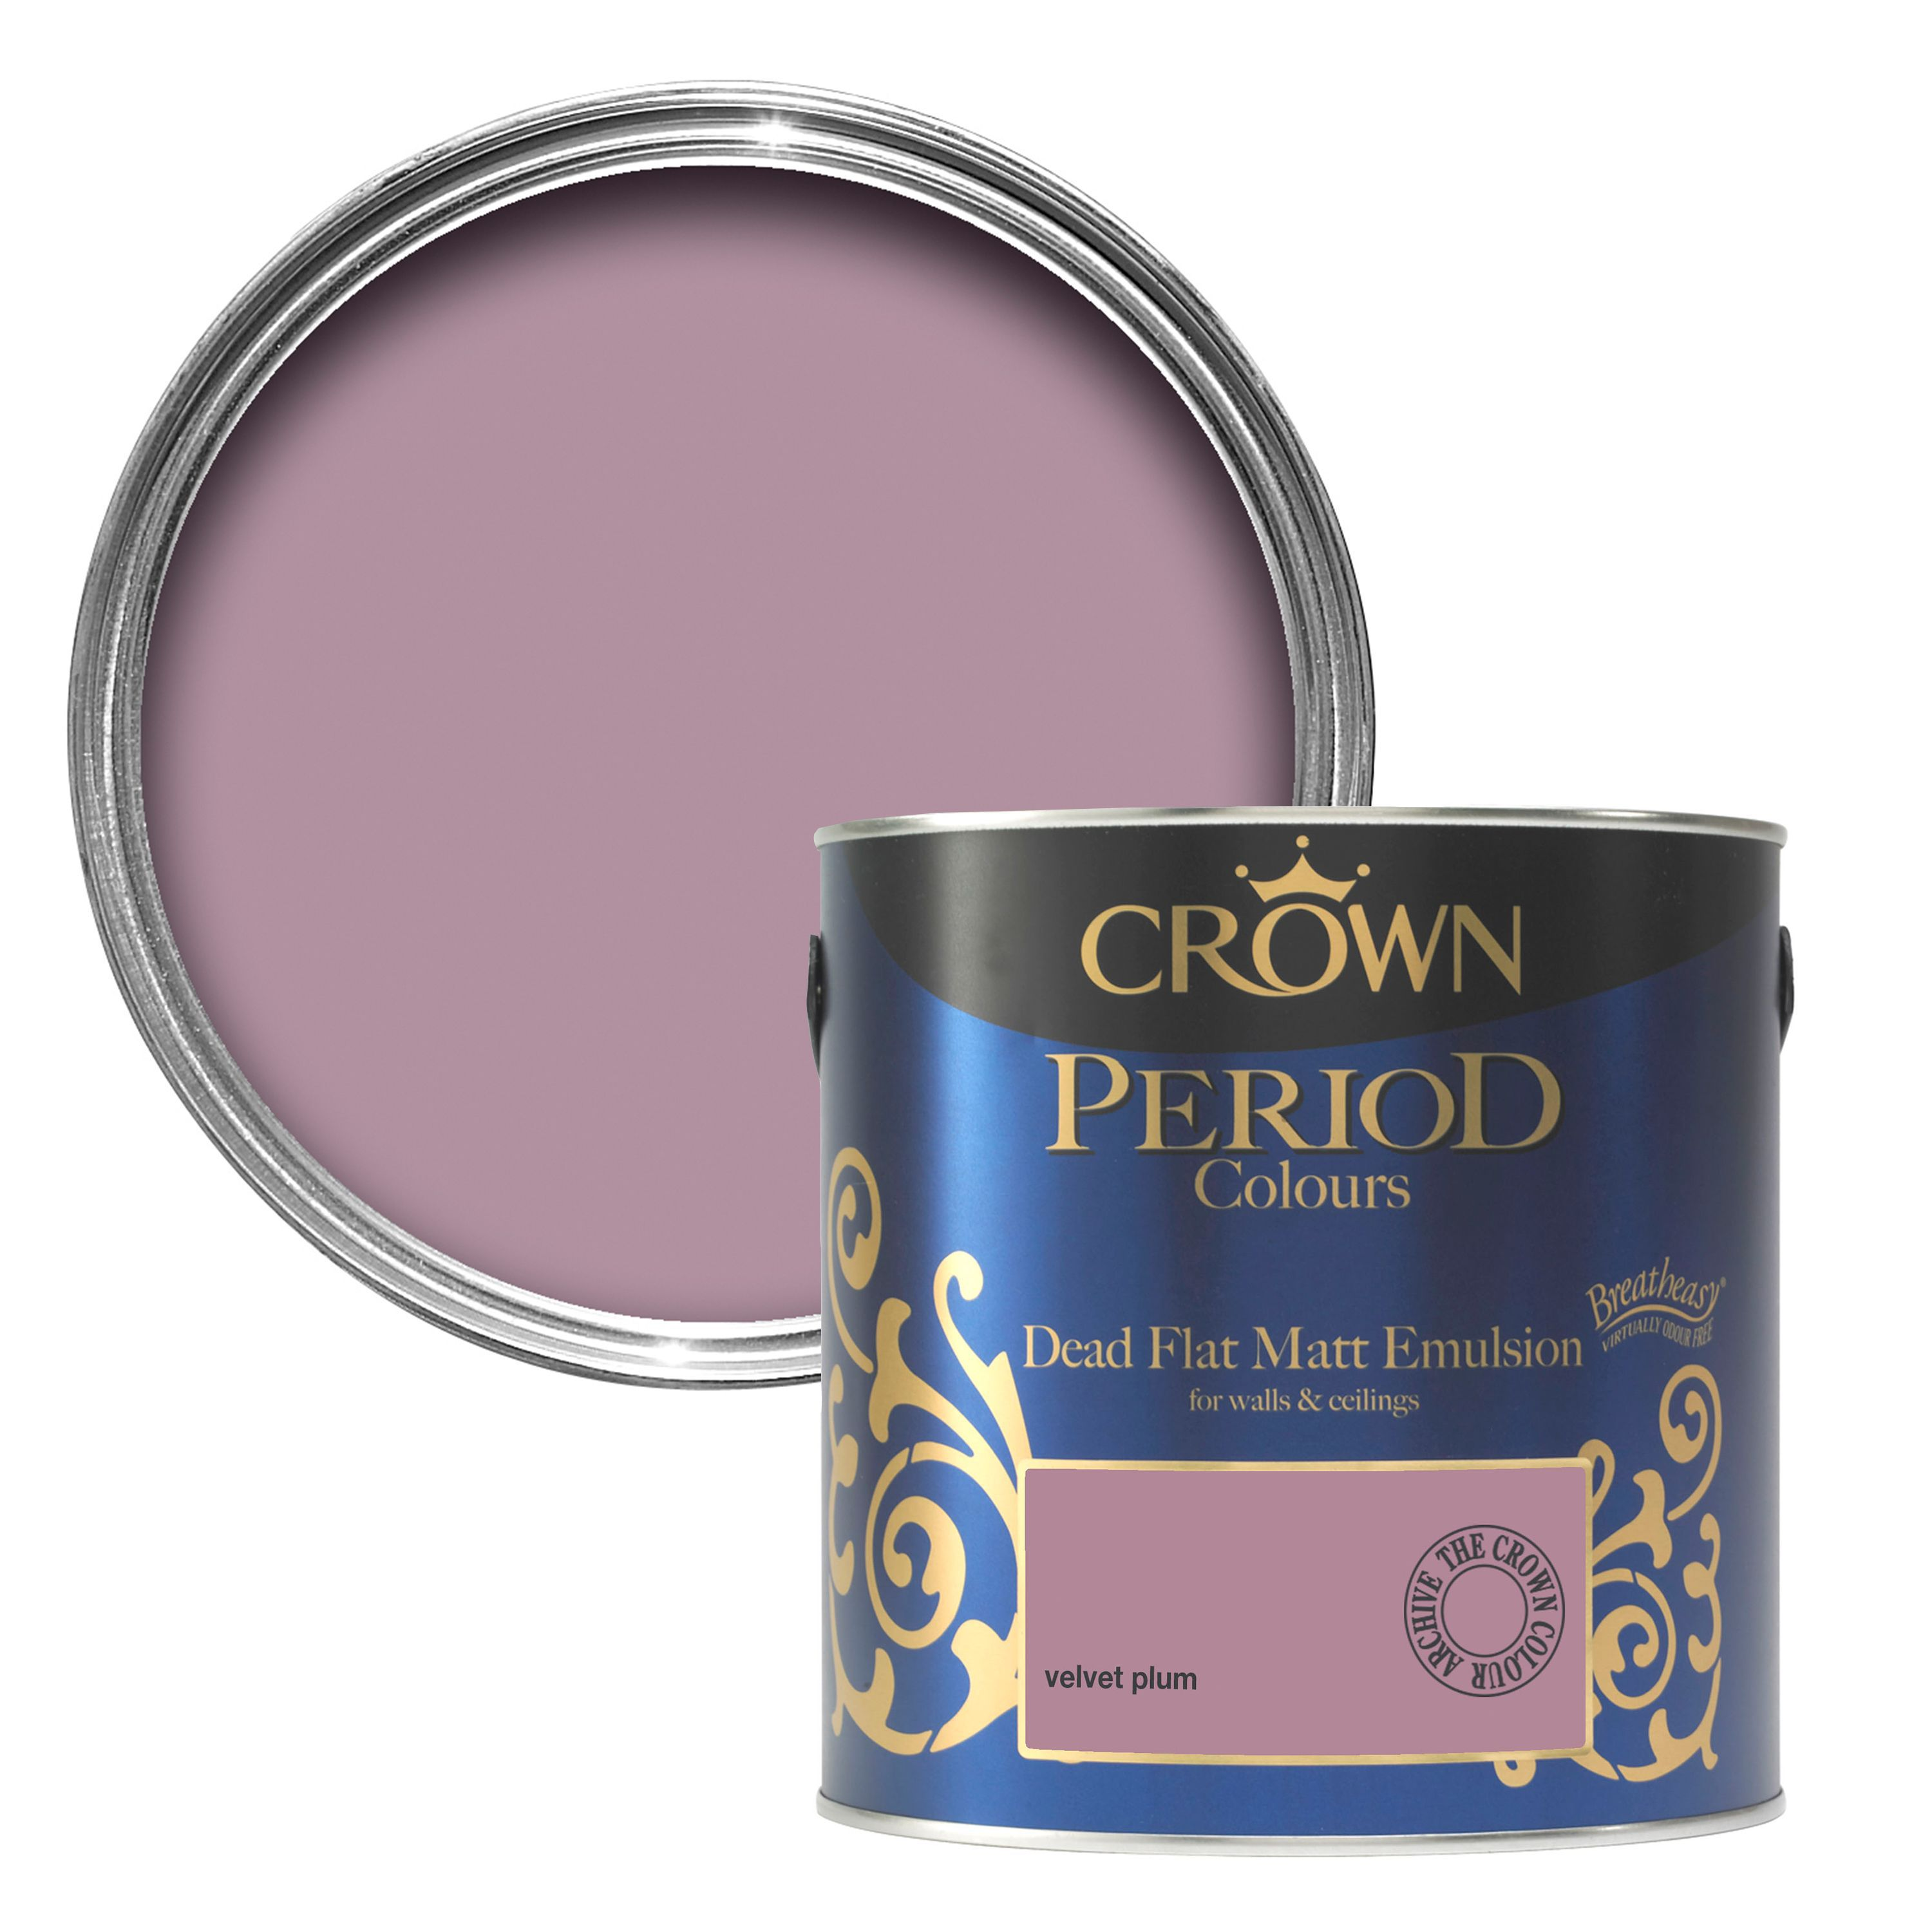 Plum Kitchen Paint: Crown Breatheasy Velvet Plum Matt Emulsion Paint 2.5L